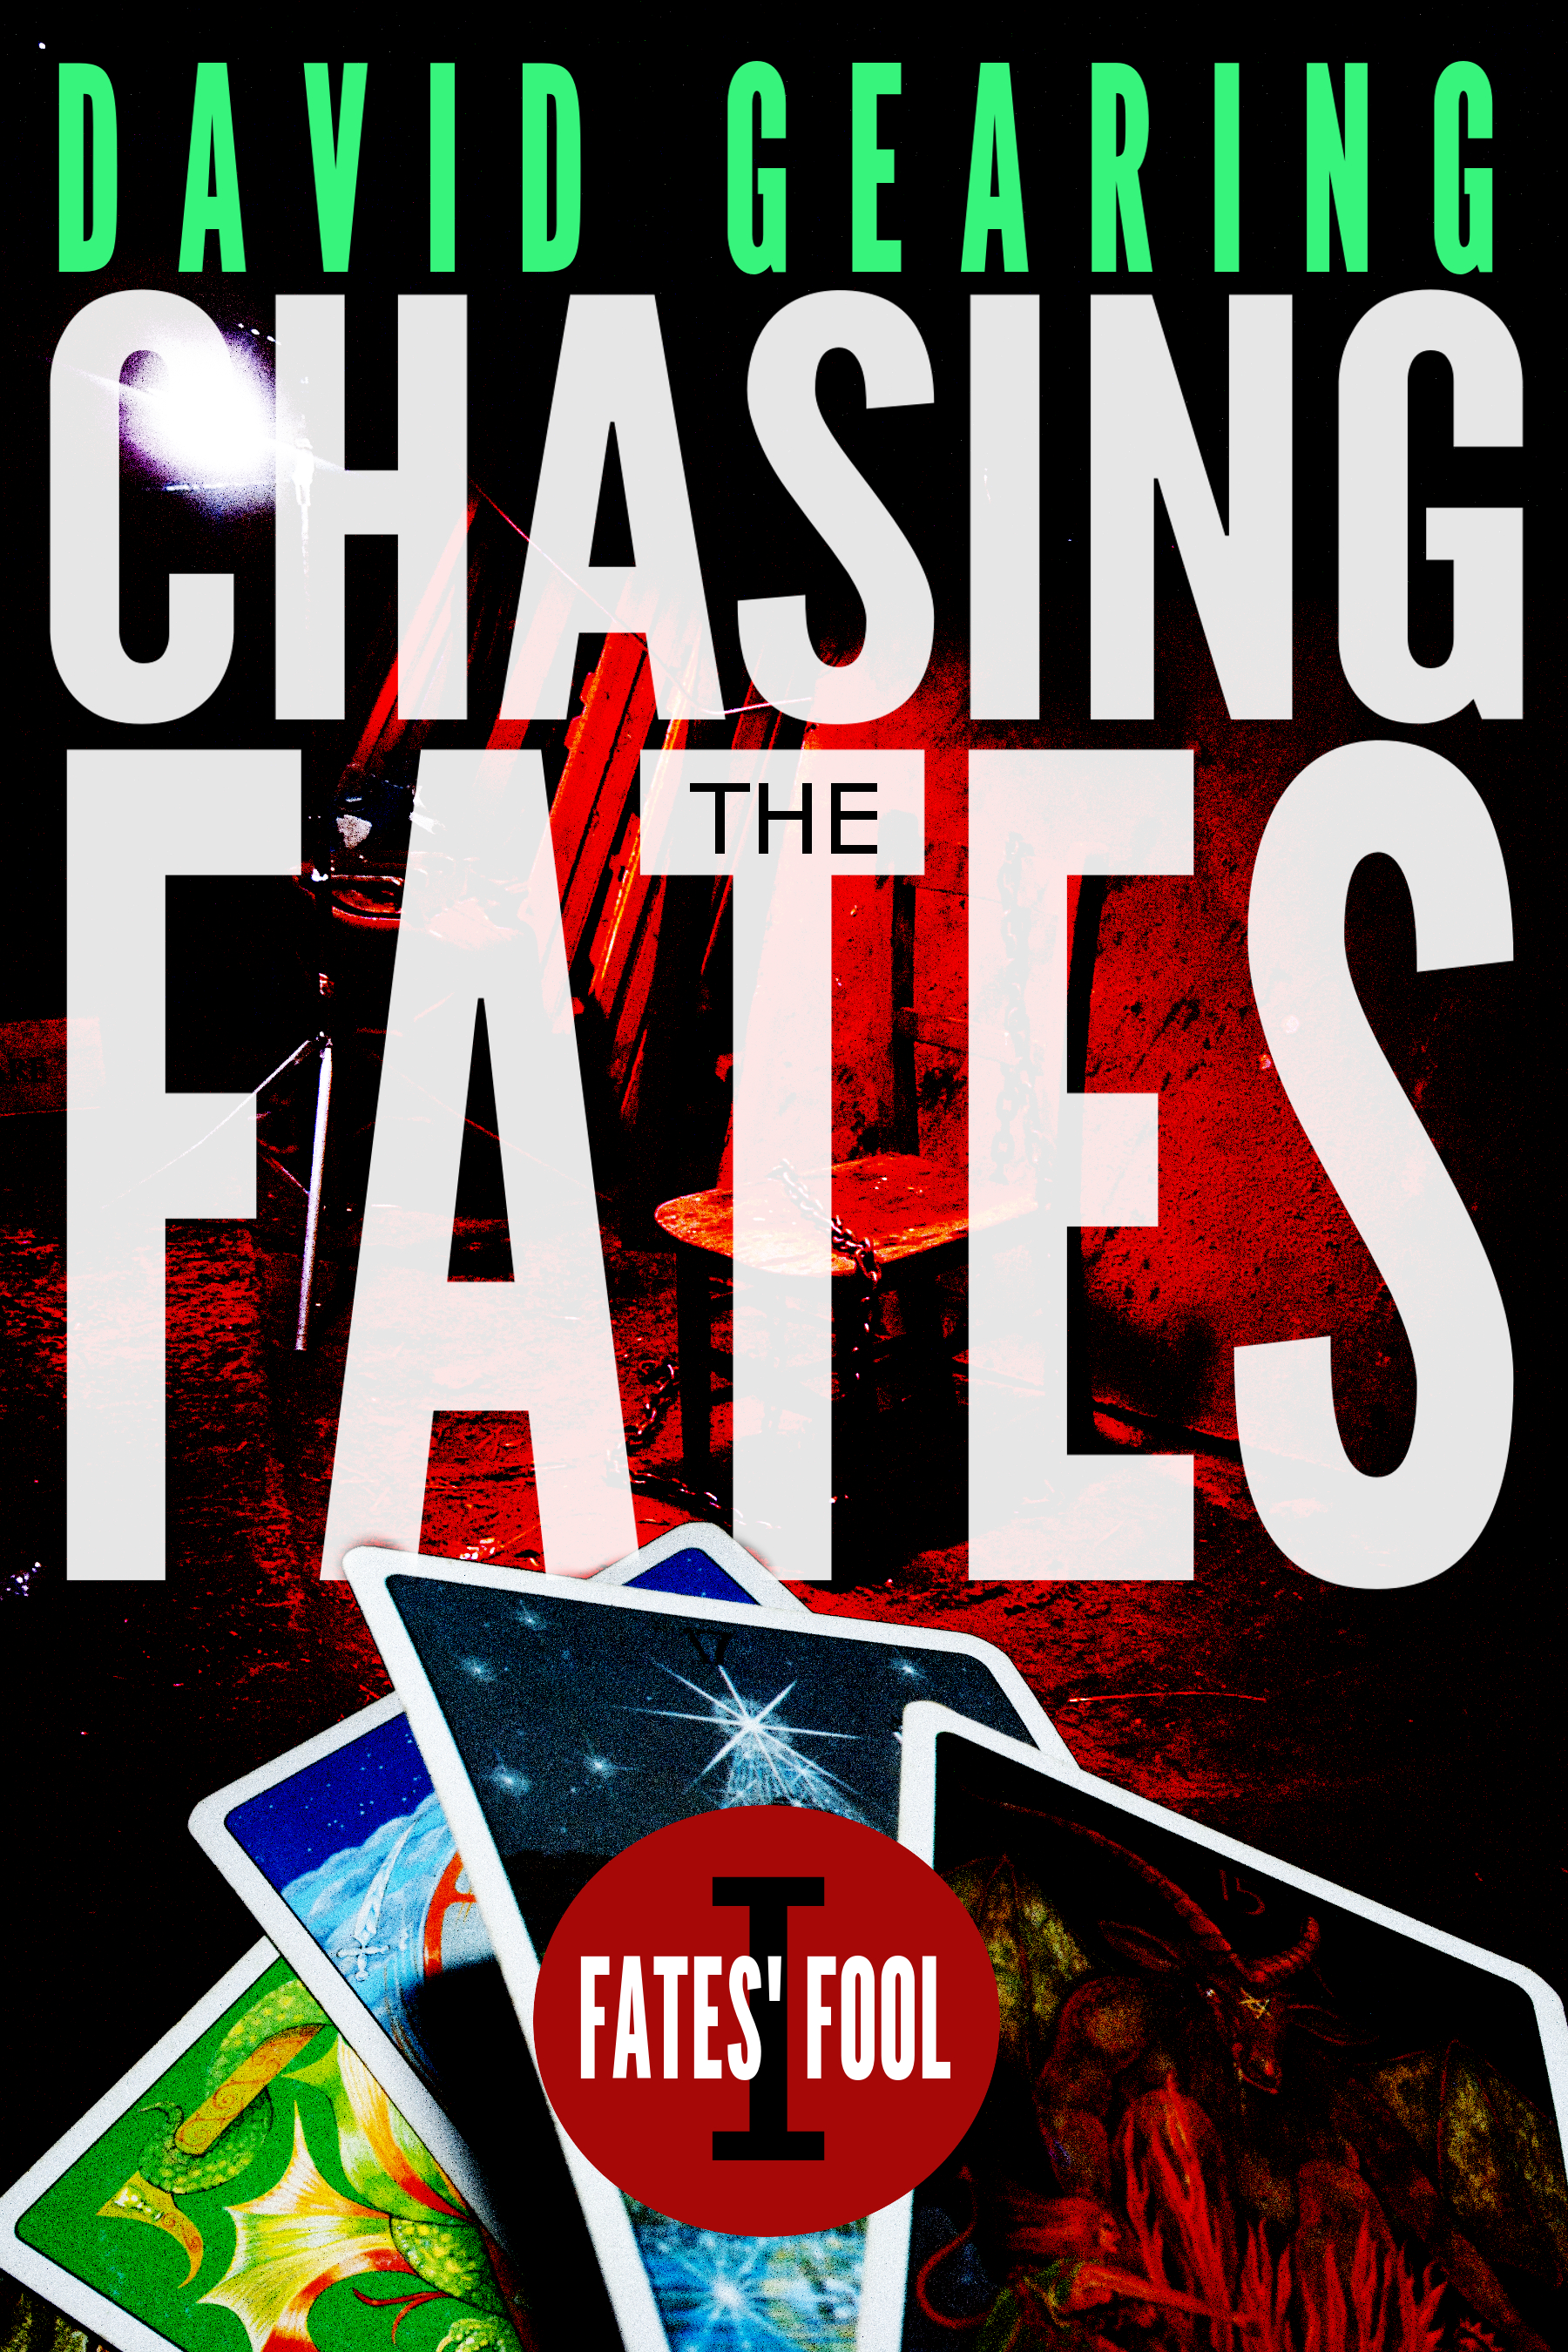 chasing fates